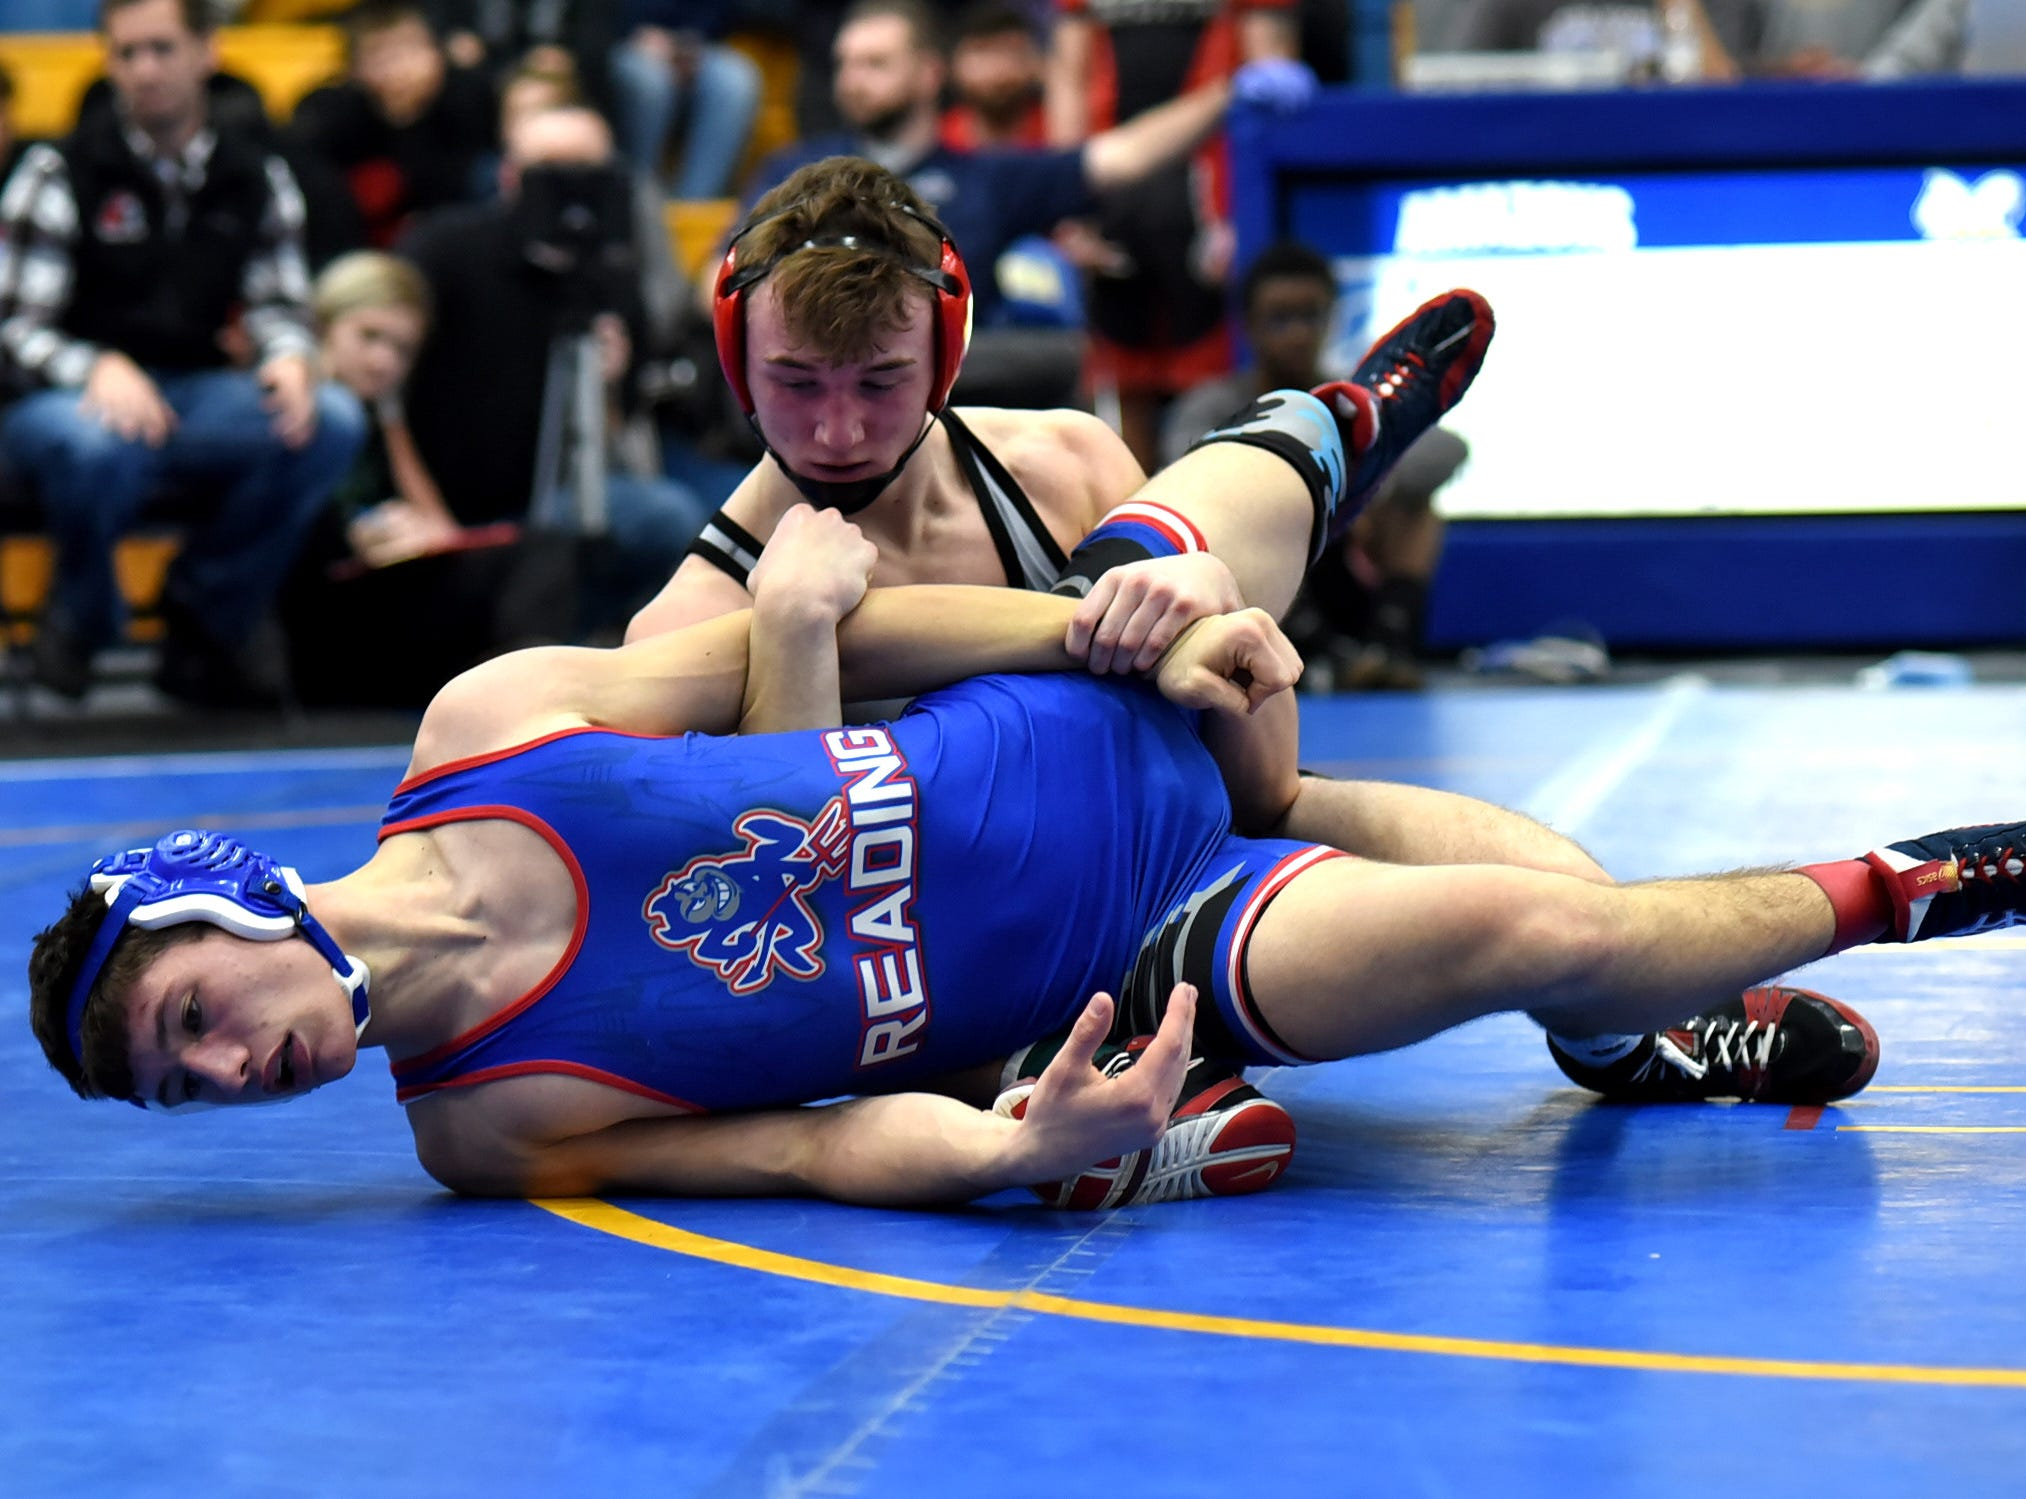 Reading's Sam Conner battles in the 152 lbs. class against Zac Samson of Point Pleasant, West Virginia, at the Bob Kearns Madeira Invitational, January 4, 2019.